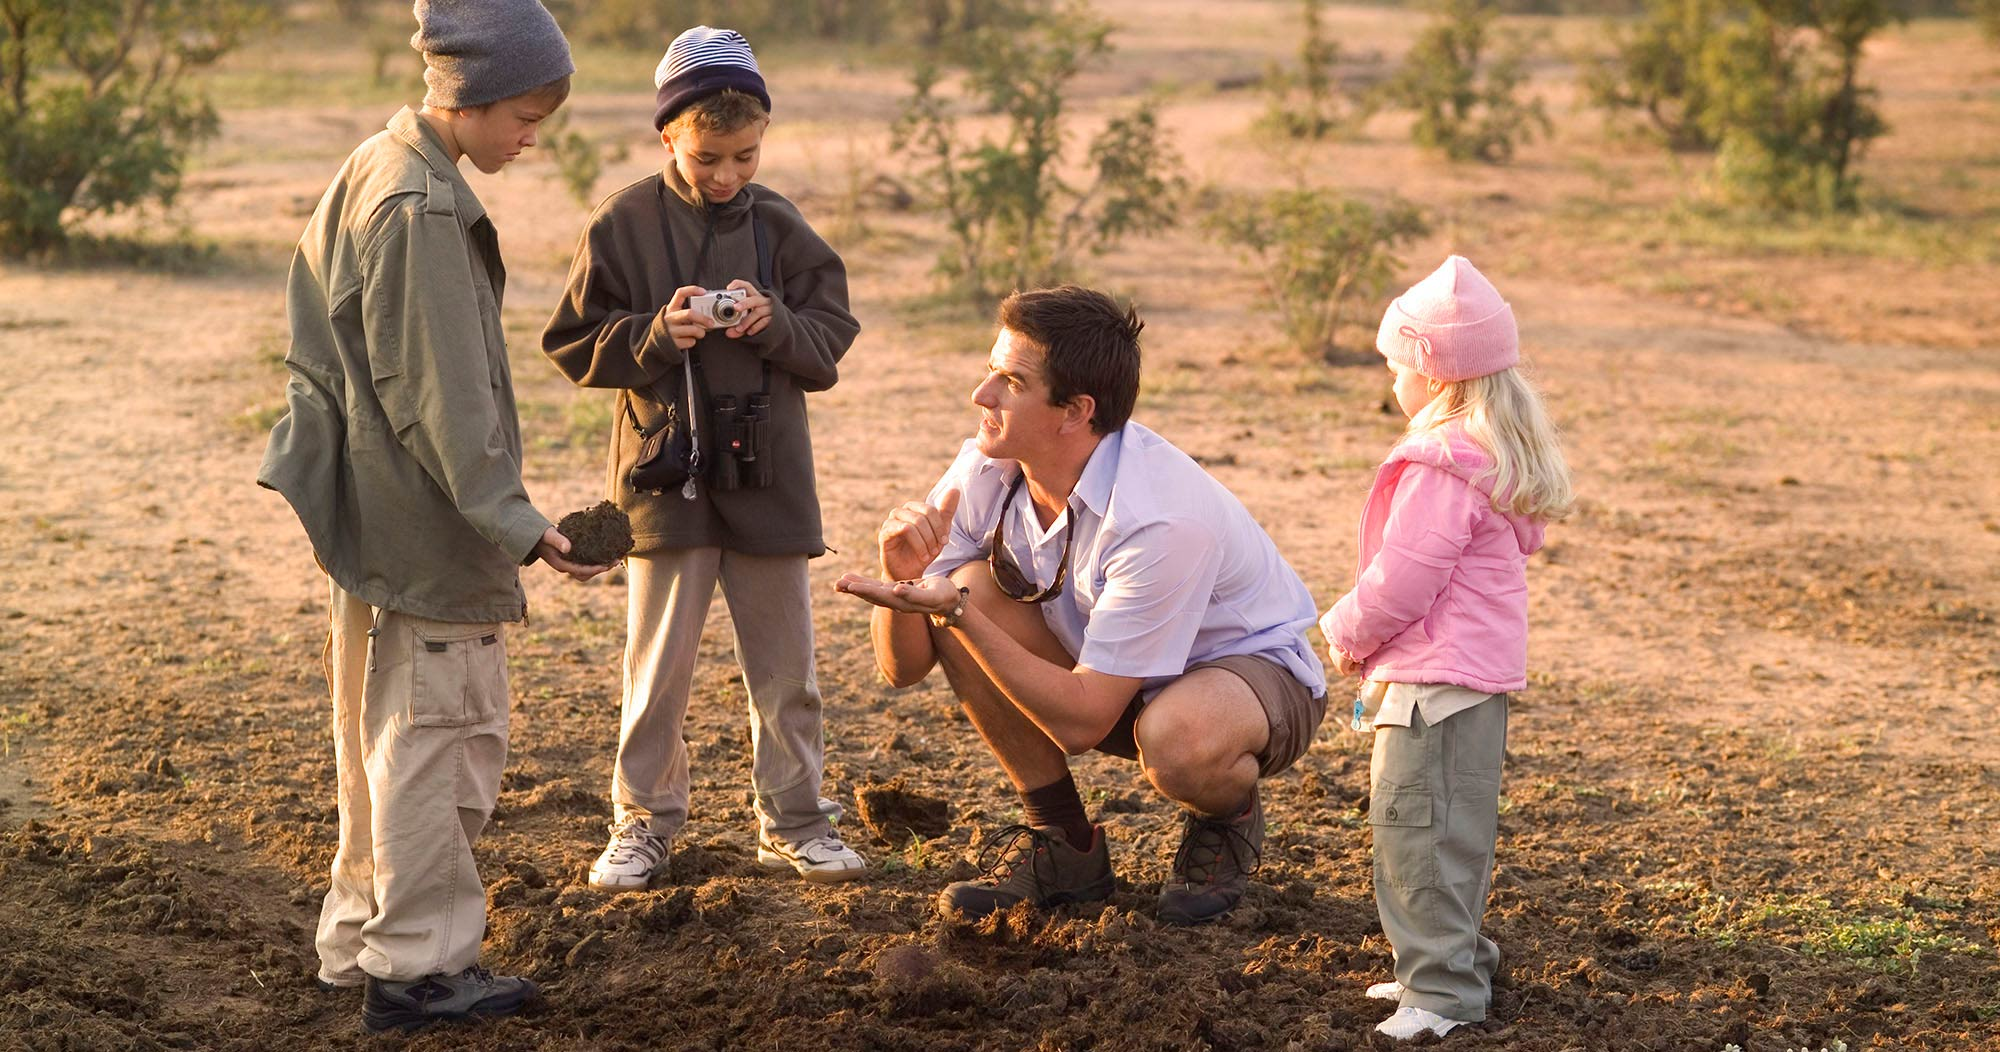 Enjoy a child frindly safari at Honeyguide Khoka Moya in Tintswalo